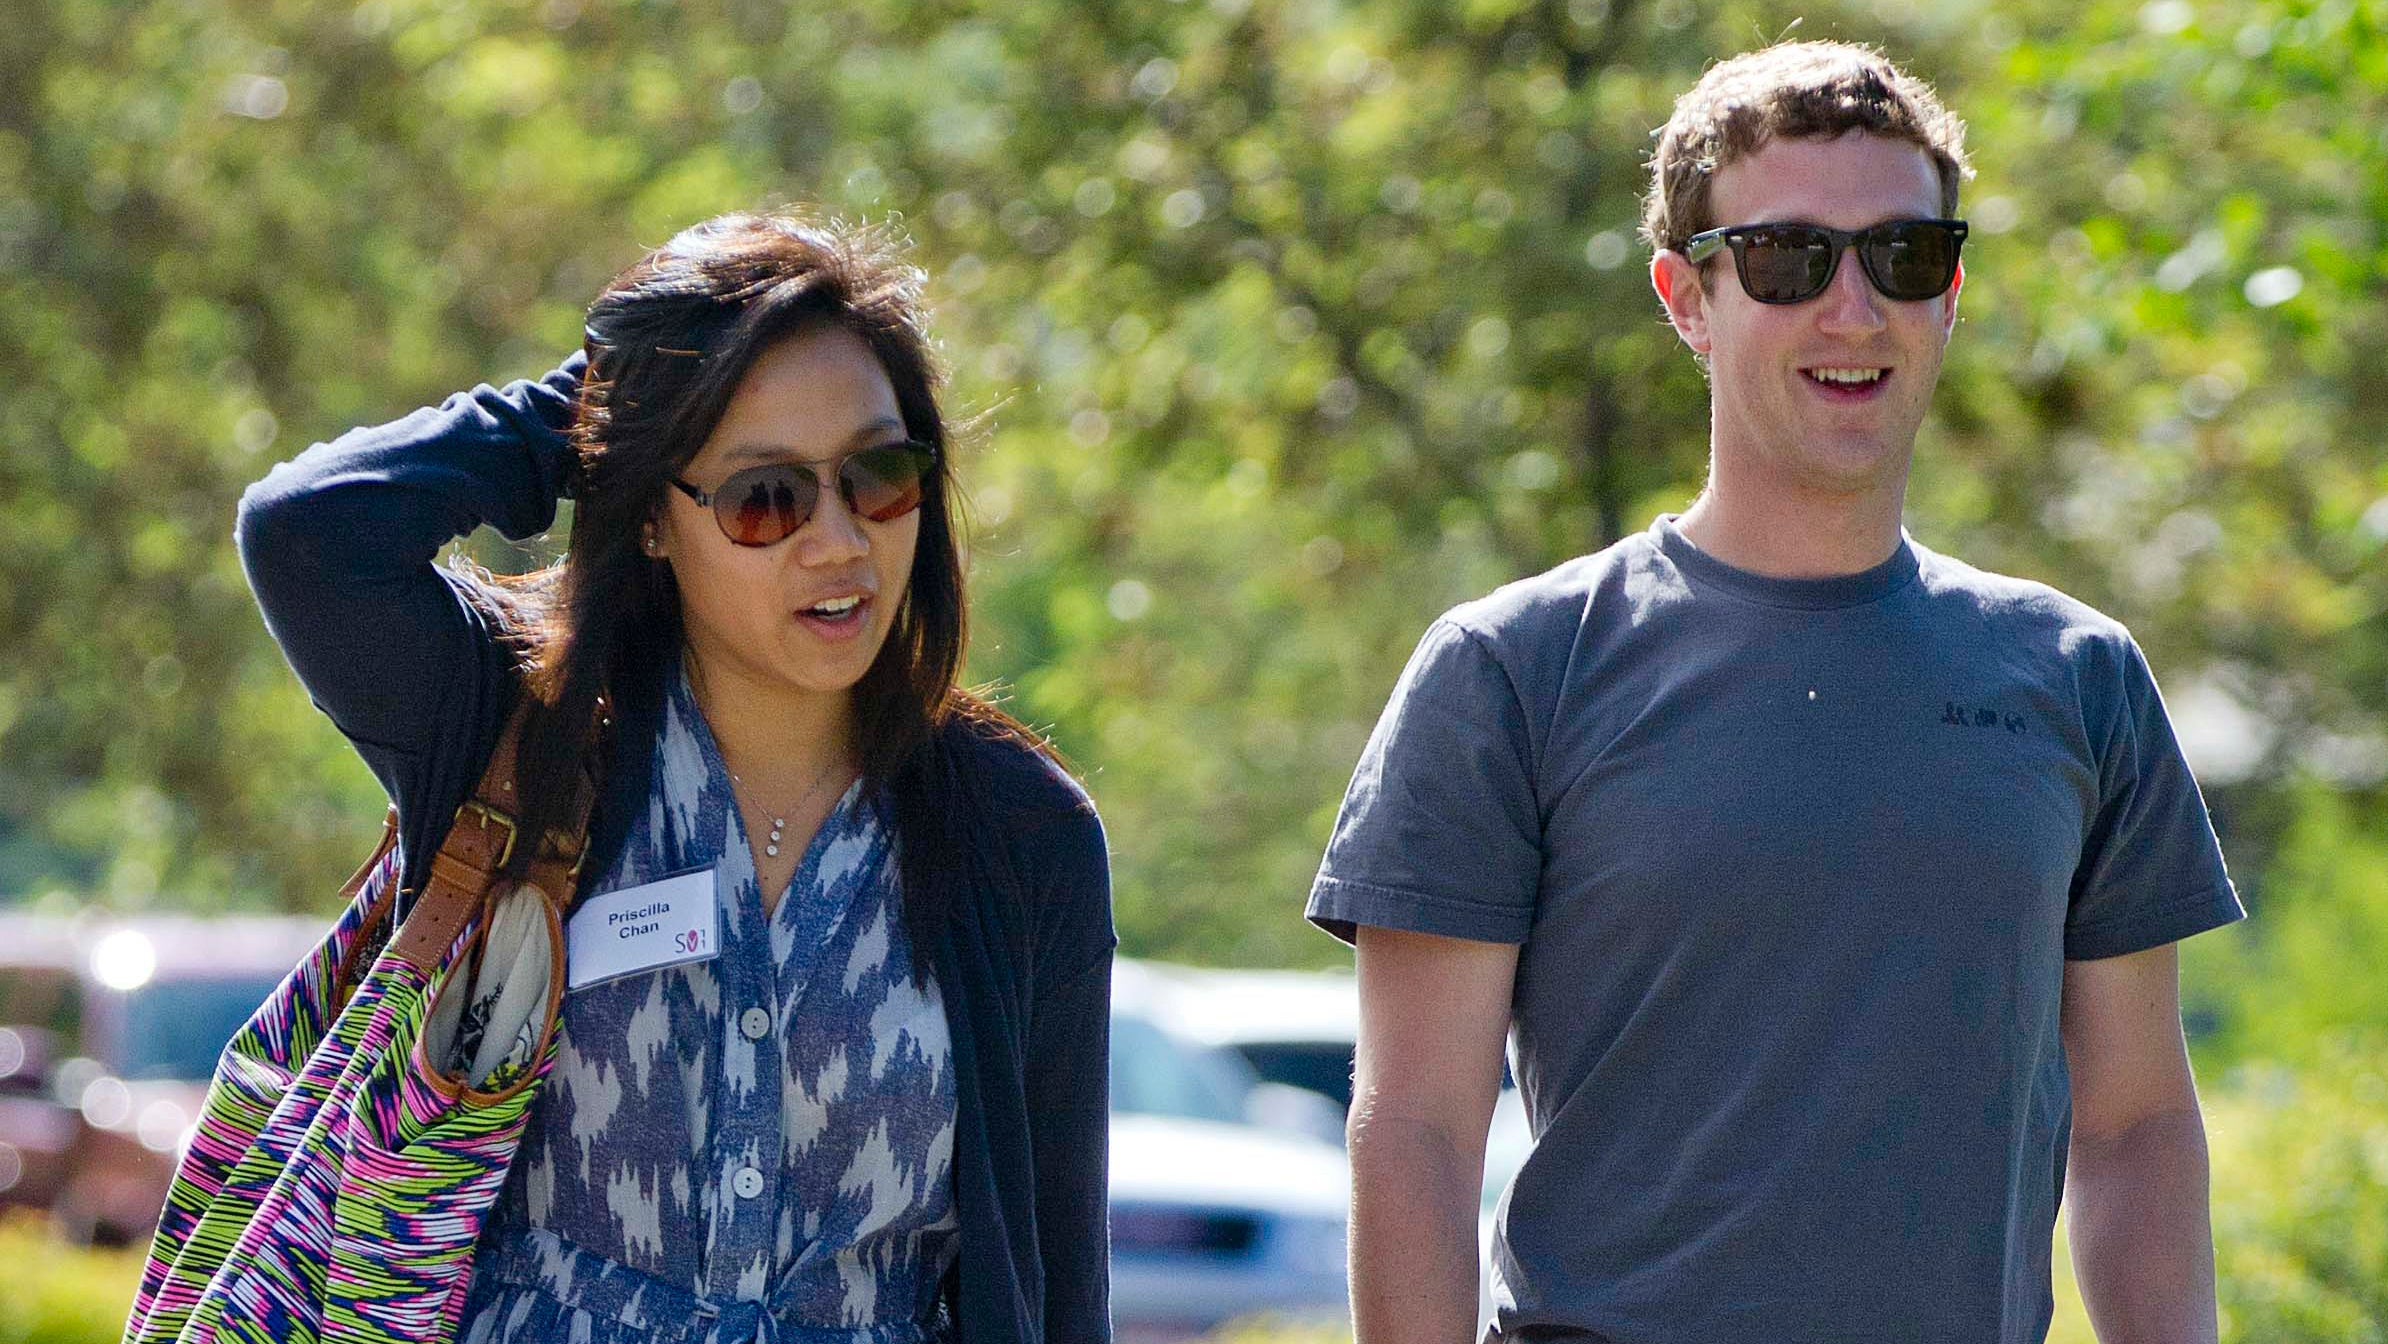 Mark Zuckerberg's Wife Can't Control His New Home Assistant